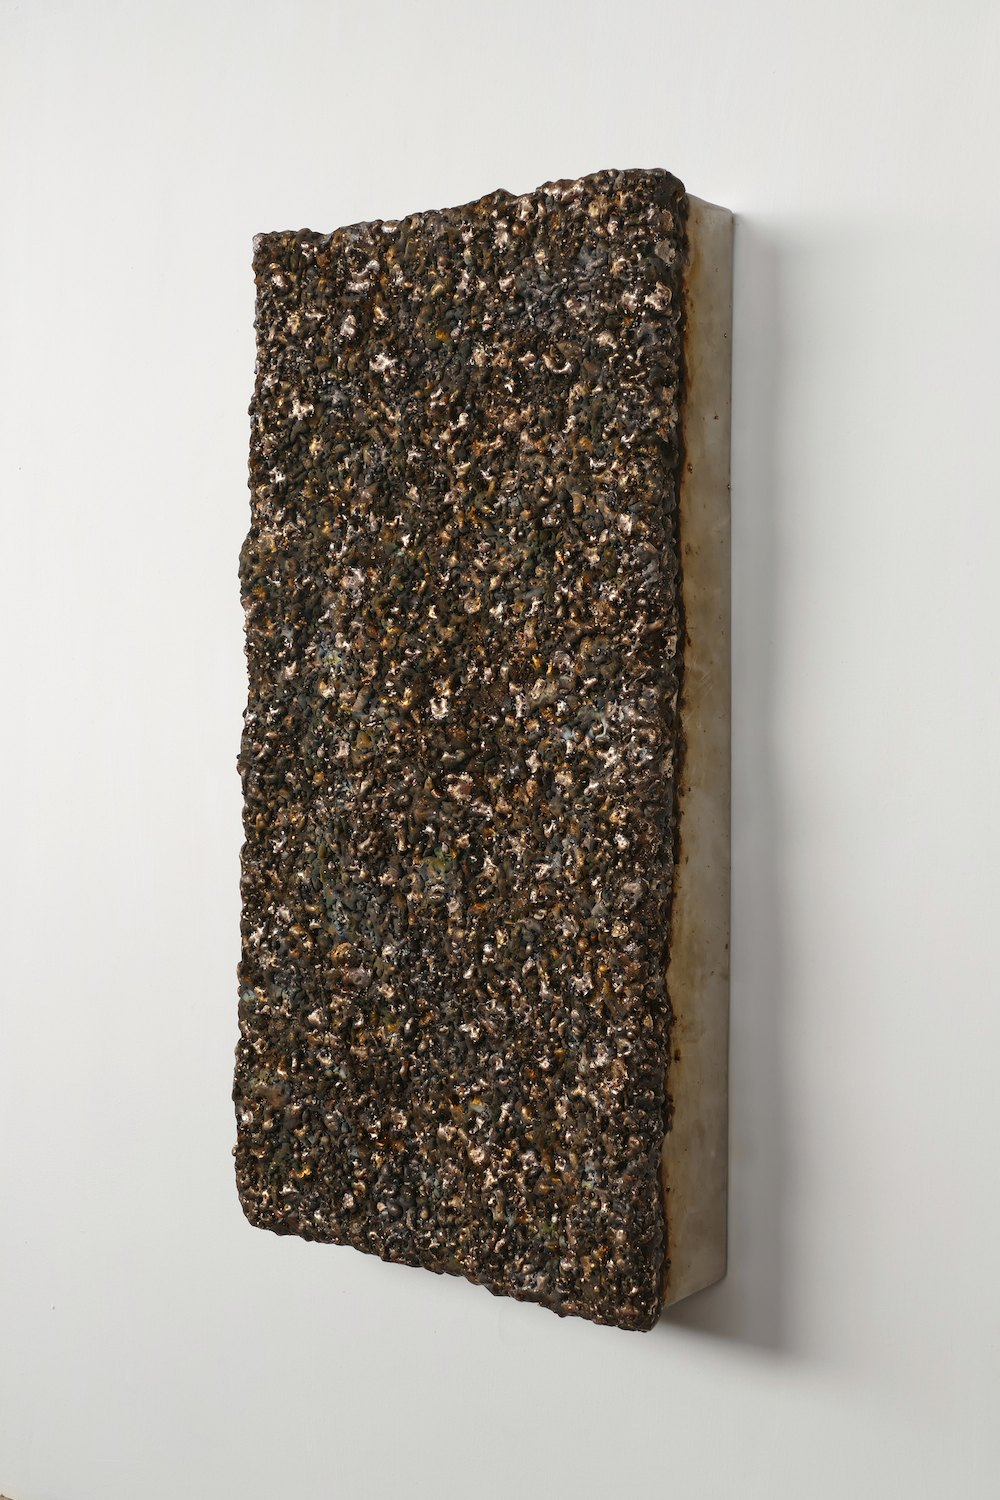 Surface Response (IV), Bronze, stainless steel